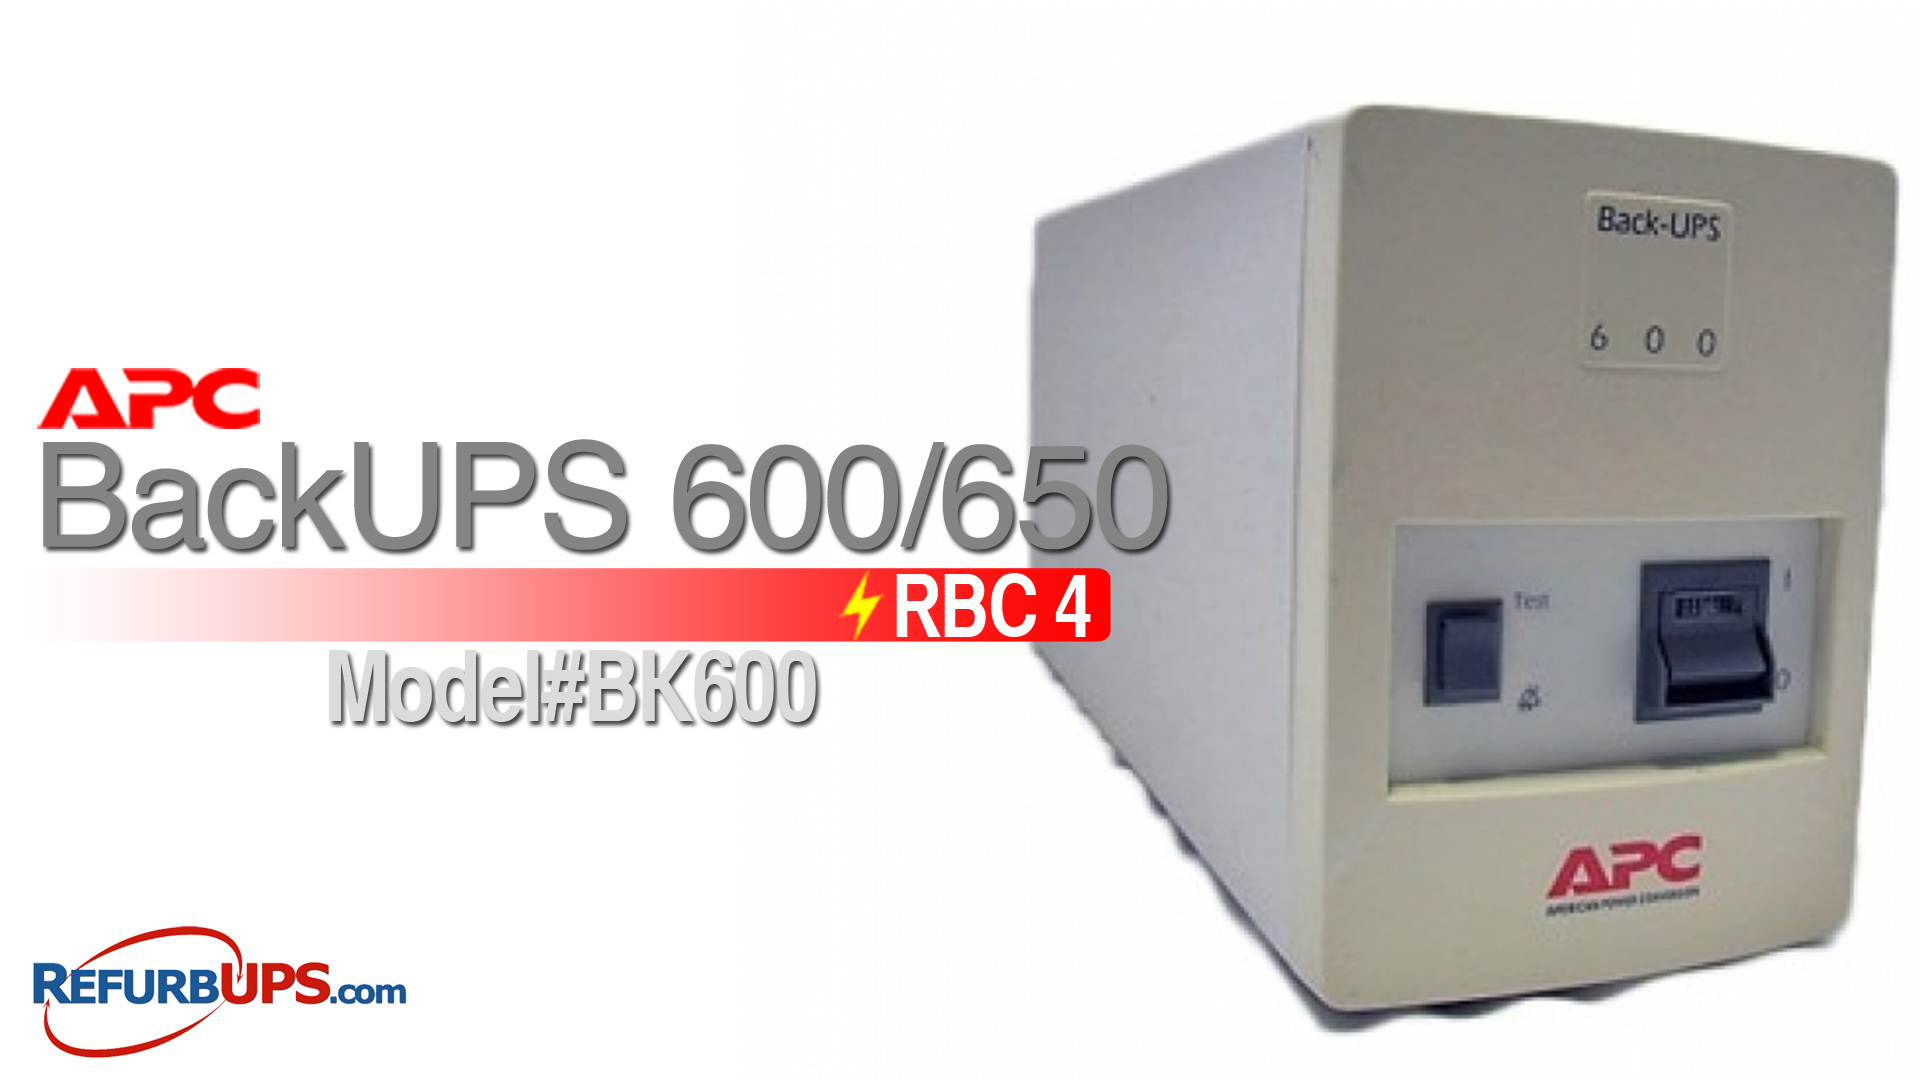 APC RBC 4 in APC BackUPS 600/650